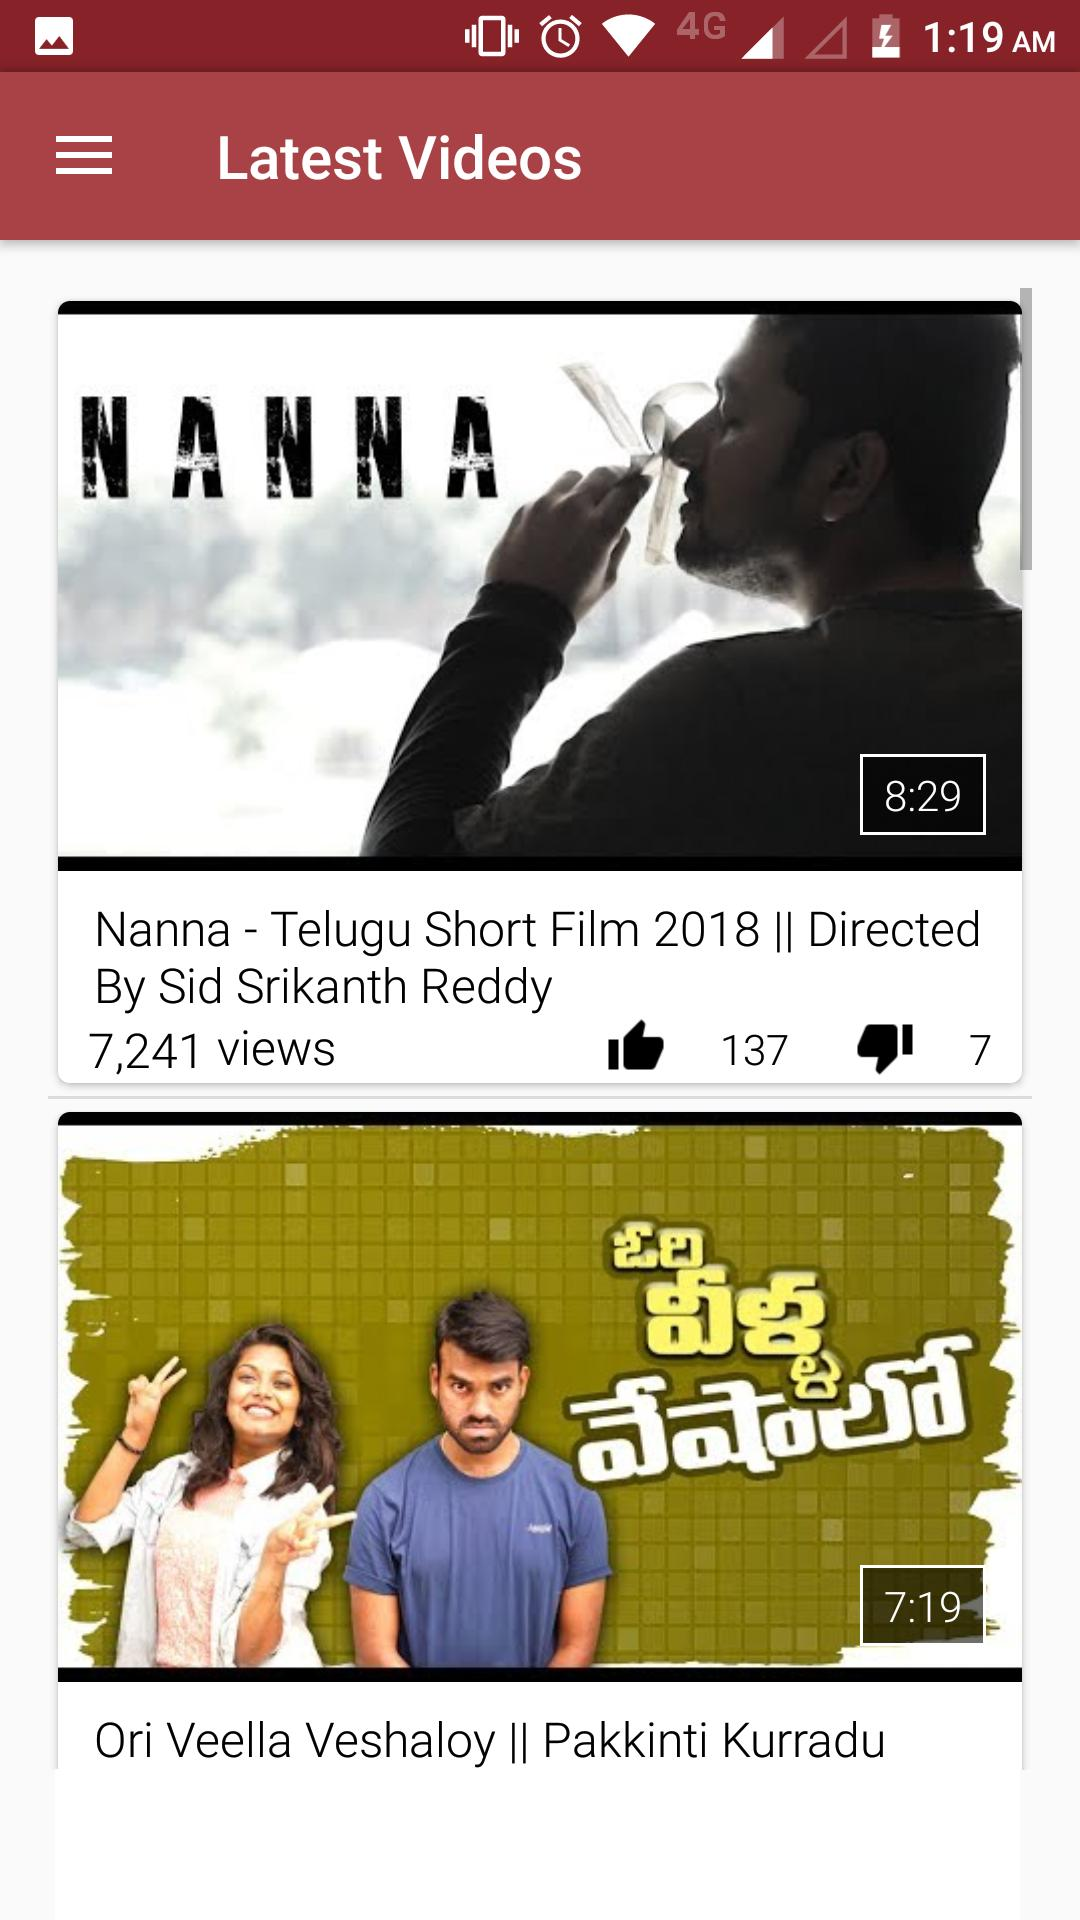 Telugu Short Films and Web Series for Android - APK Download